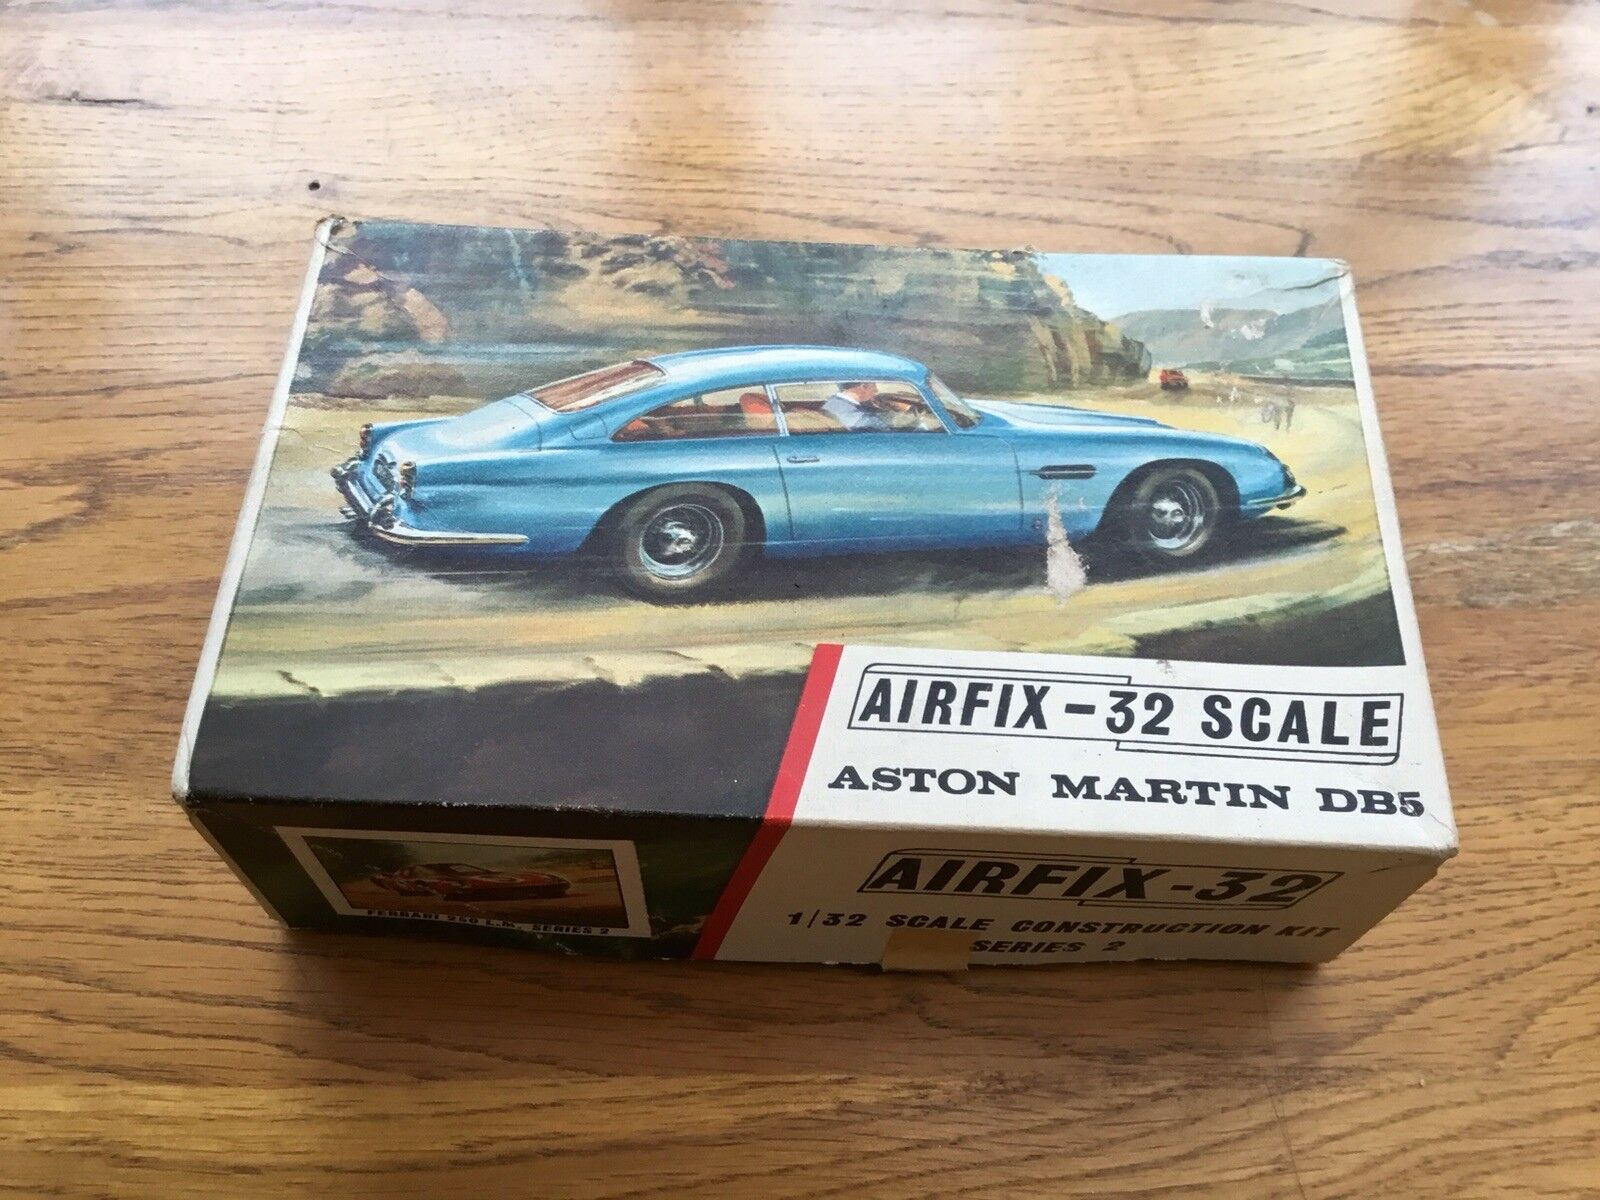 Airfix-32 Aston Martin DB5 Model Kit